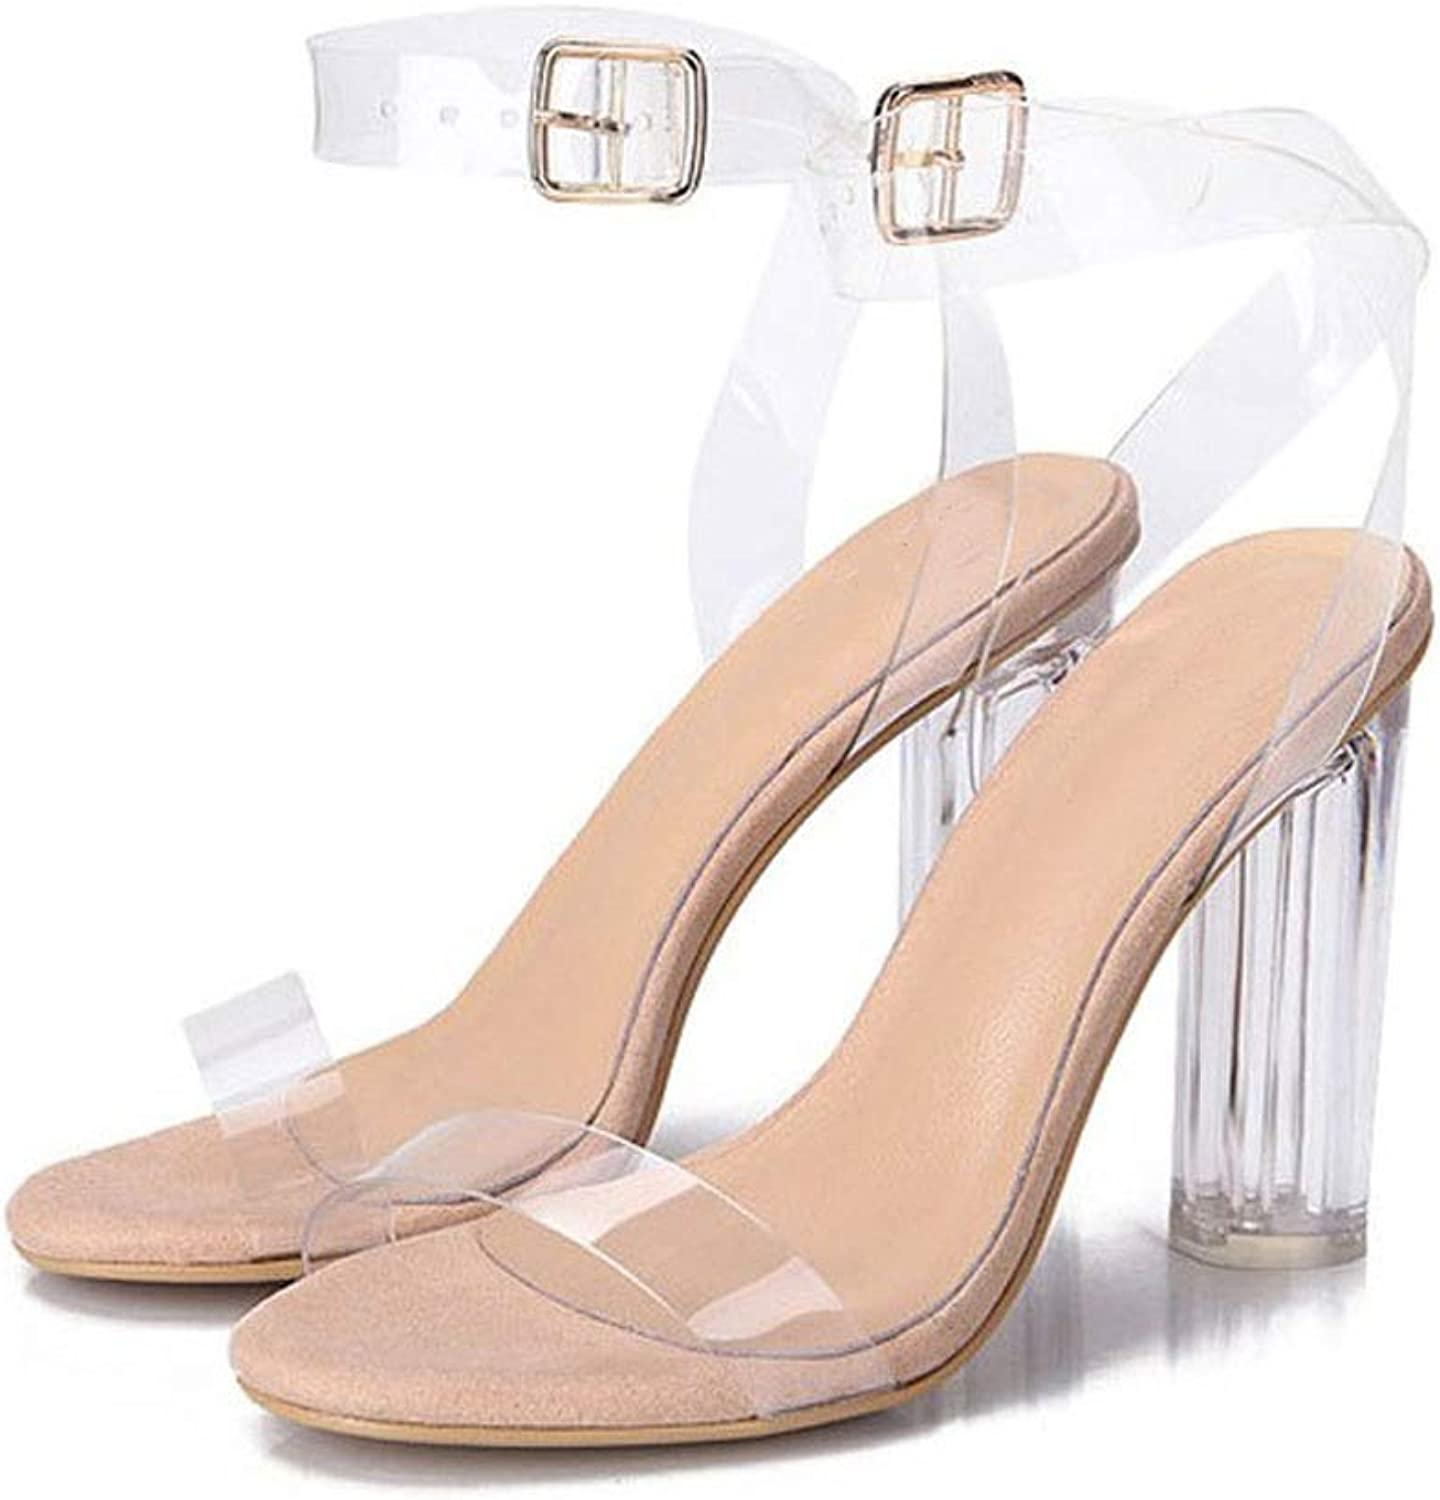 Women's Clear Strappy Block Chunky High Heel Open Peep Toe Sandal Pumps Party Wedding Dress shoes (color   Khaki, Size   36)